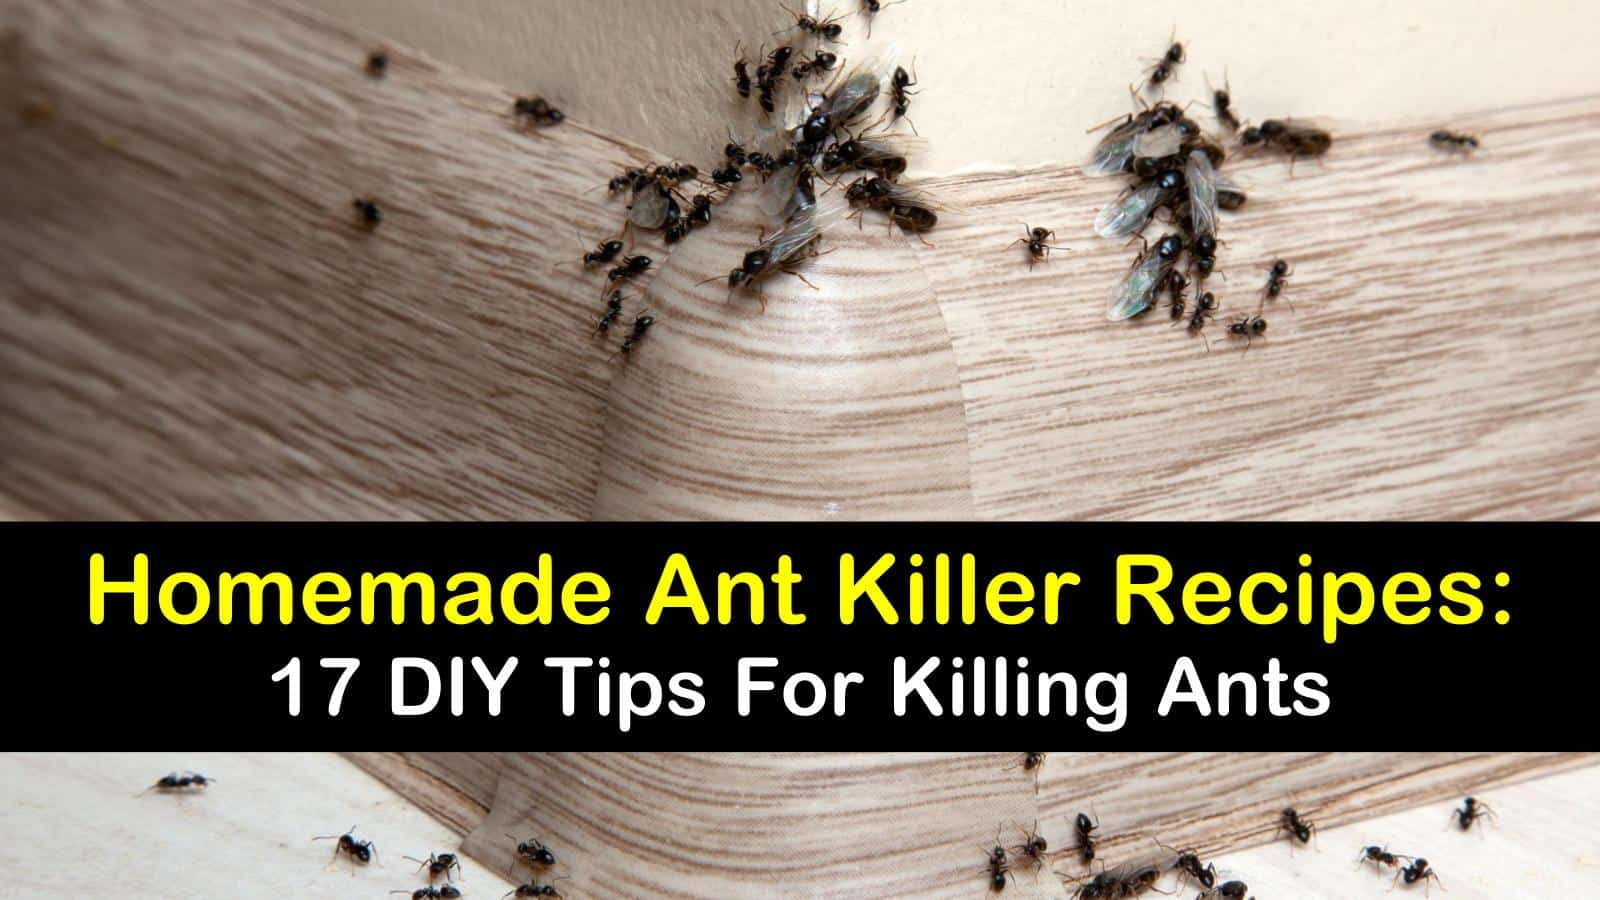 17 DIY Ant Killer Recipes for Indoors & Out